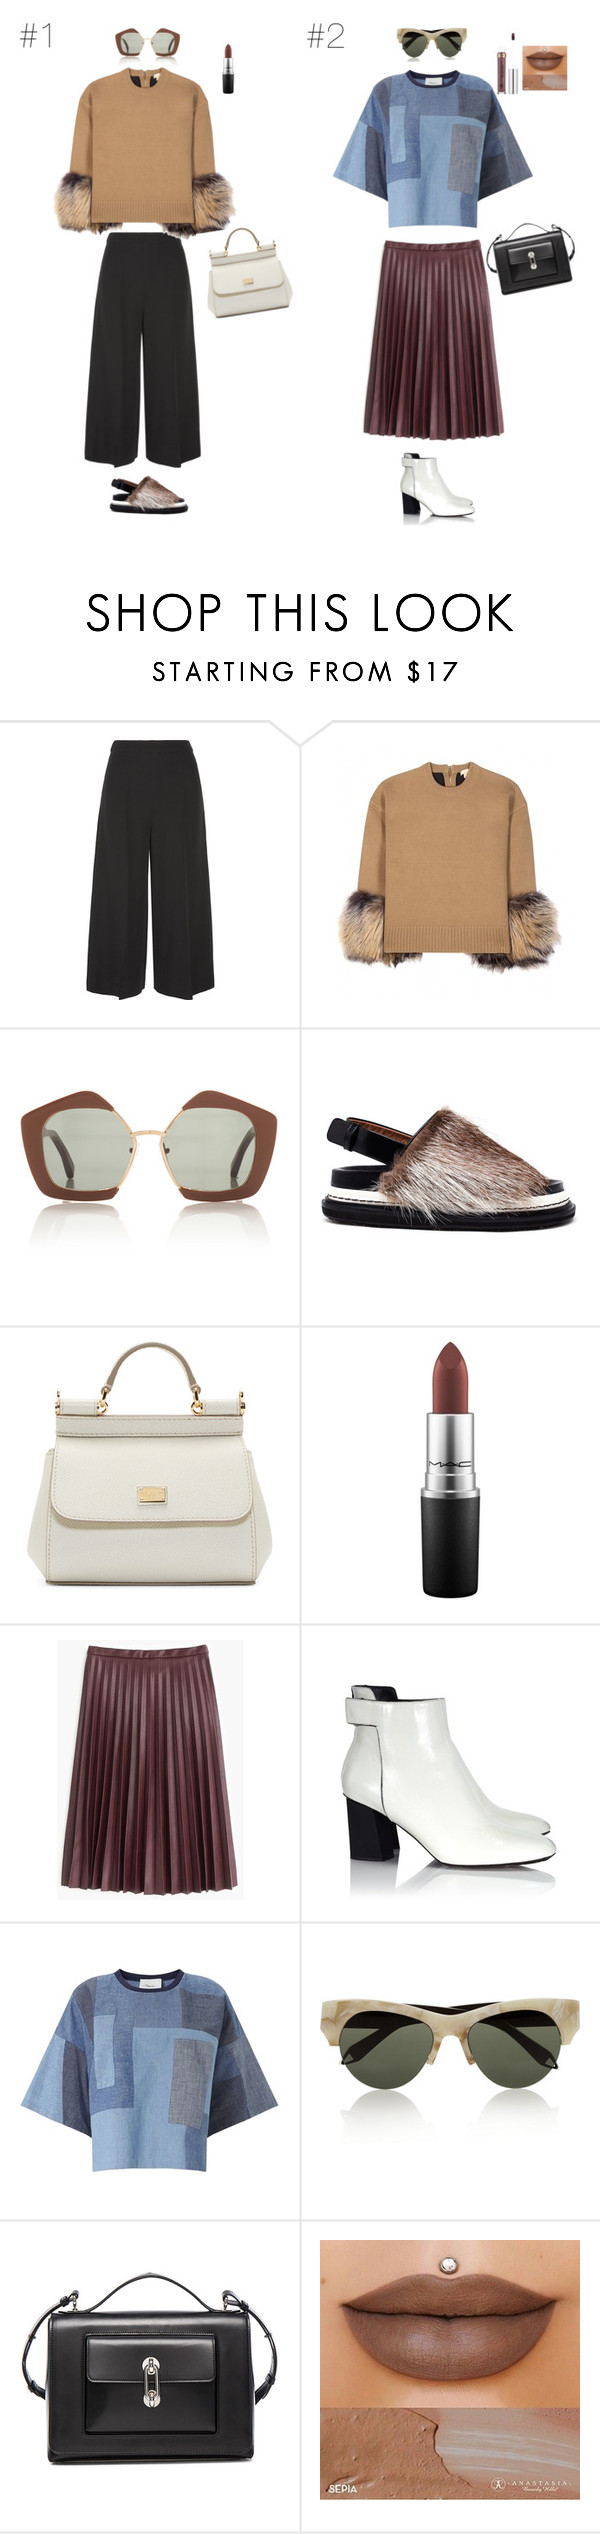 """'15 Fall/Winter Streetstyle Look"" by maries on Polyvore featuring Valentino, Michael Kors, Marni, Dolce&Gabbana, MAC Cosmetics, J.Crew, Proenza Schouler, 3.1 Phillip Lim, Victoria Beckham and Balenciaga"